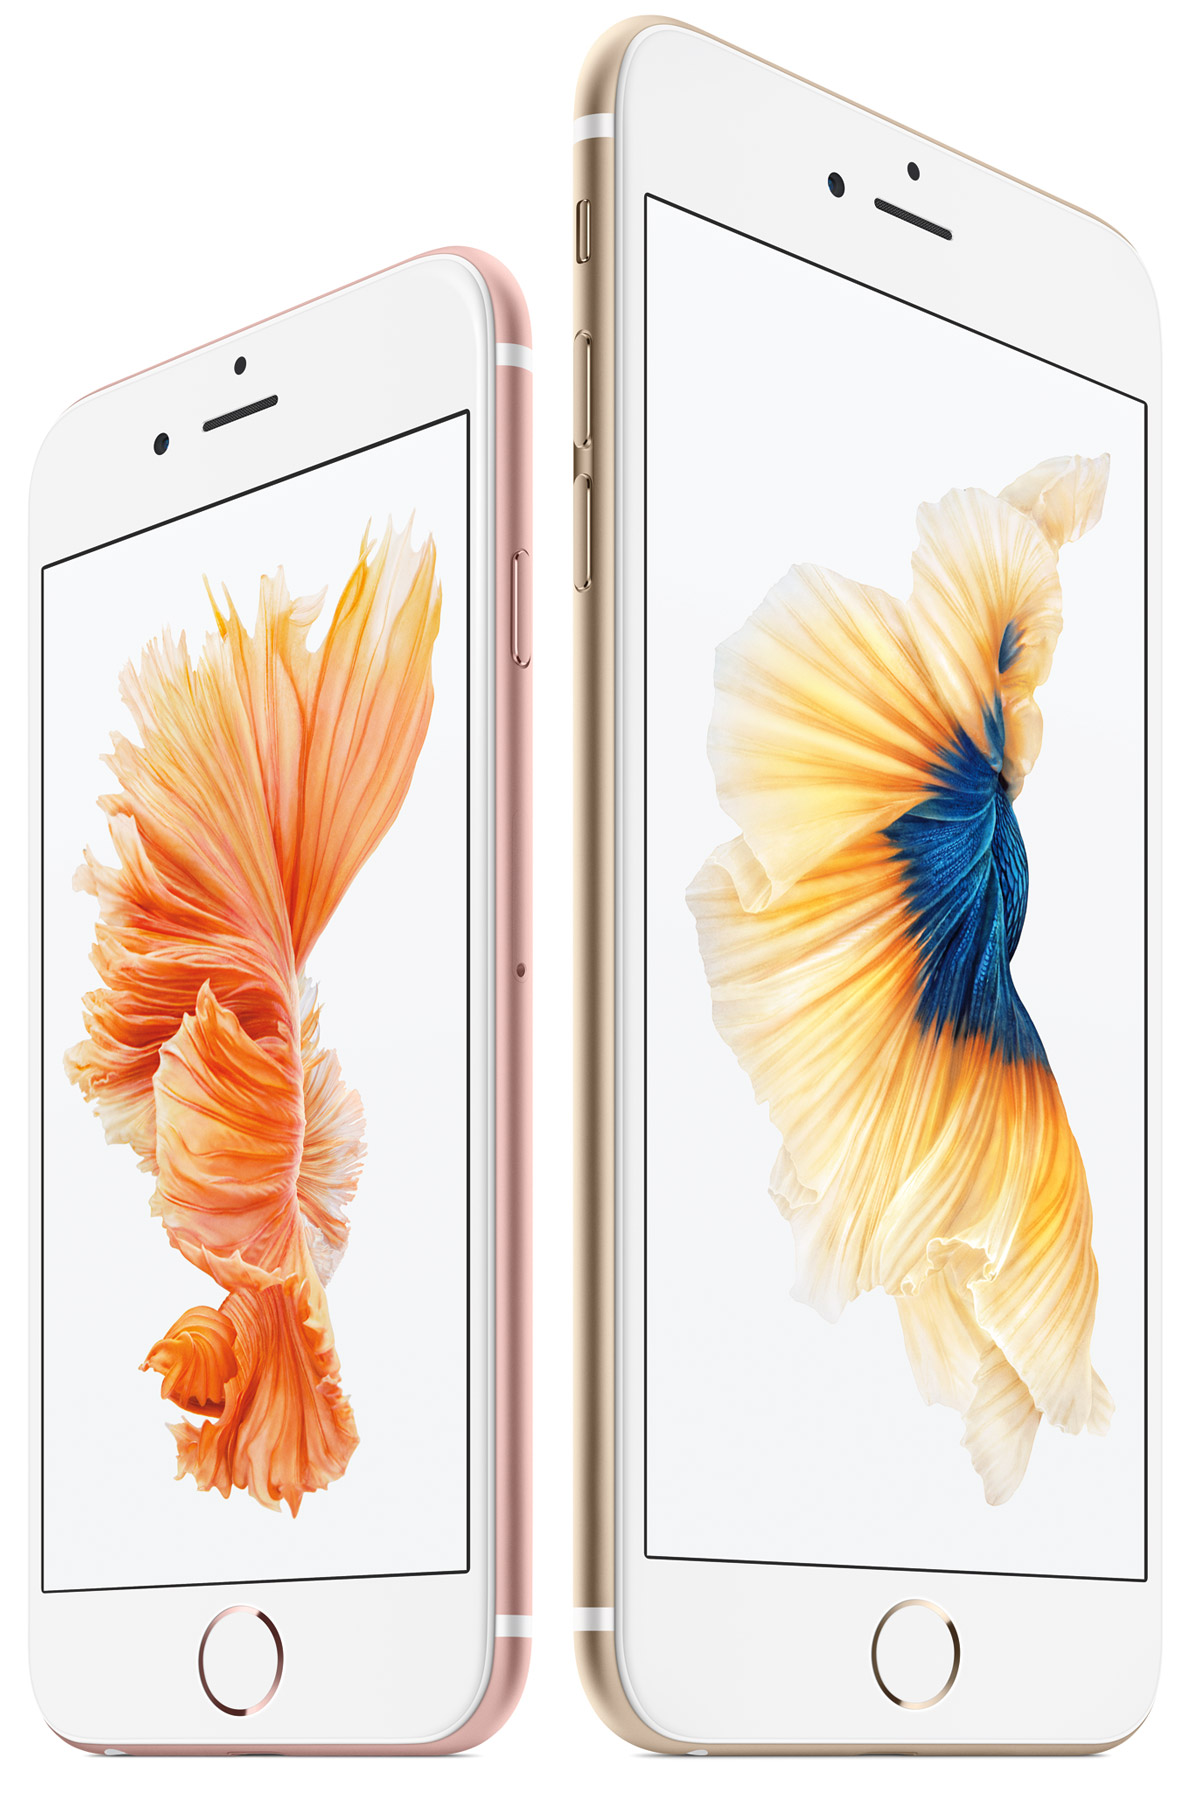 Apple's iPhone 6s breaks launch weekend sales figures